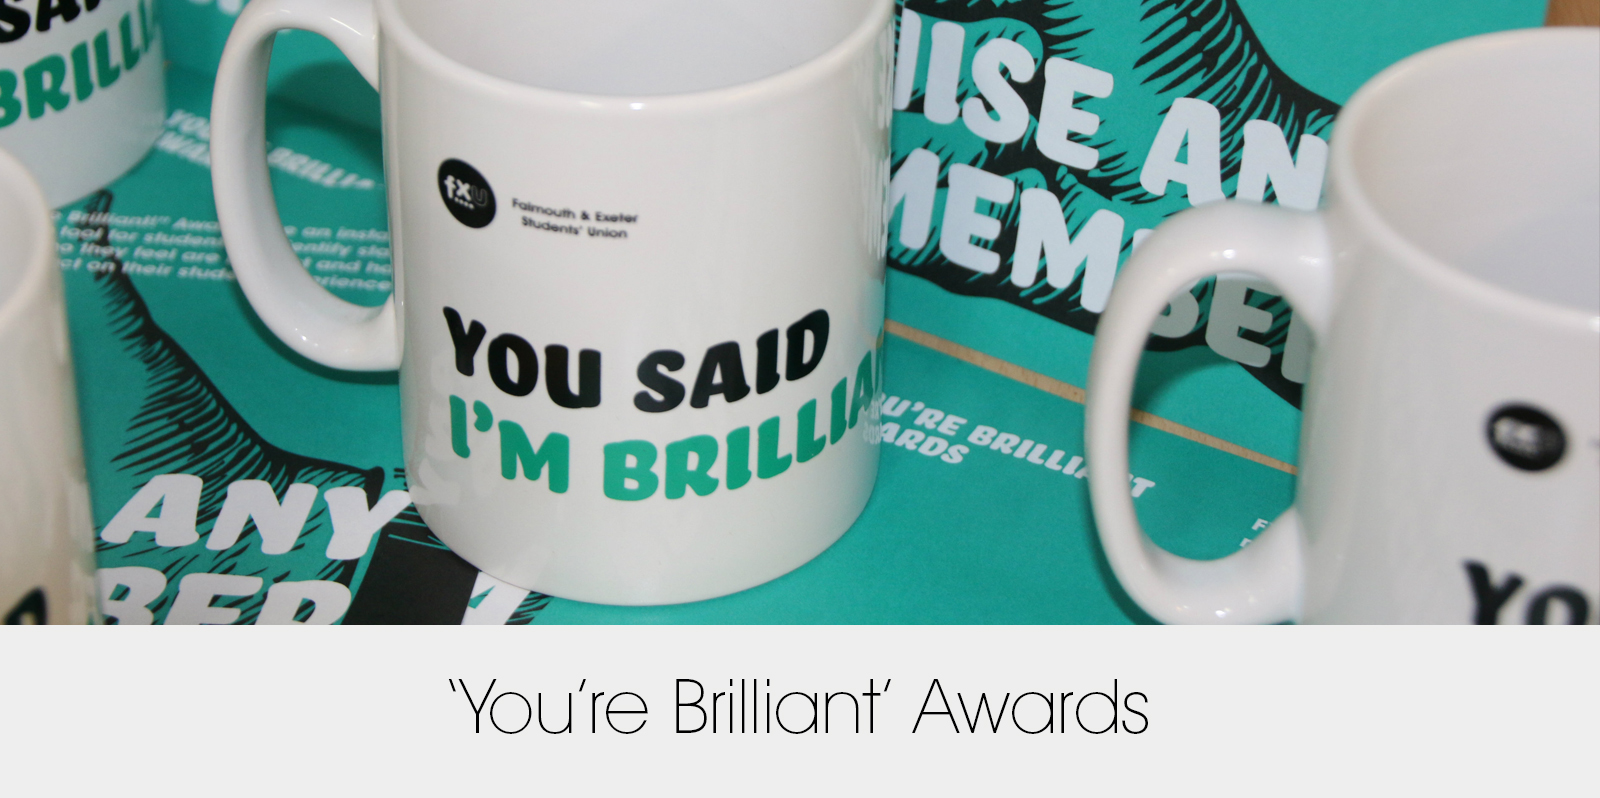 You're Brilliant Awards